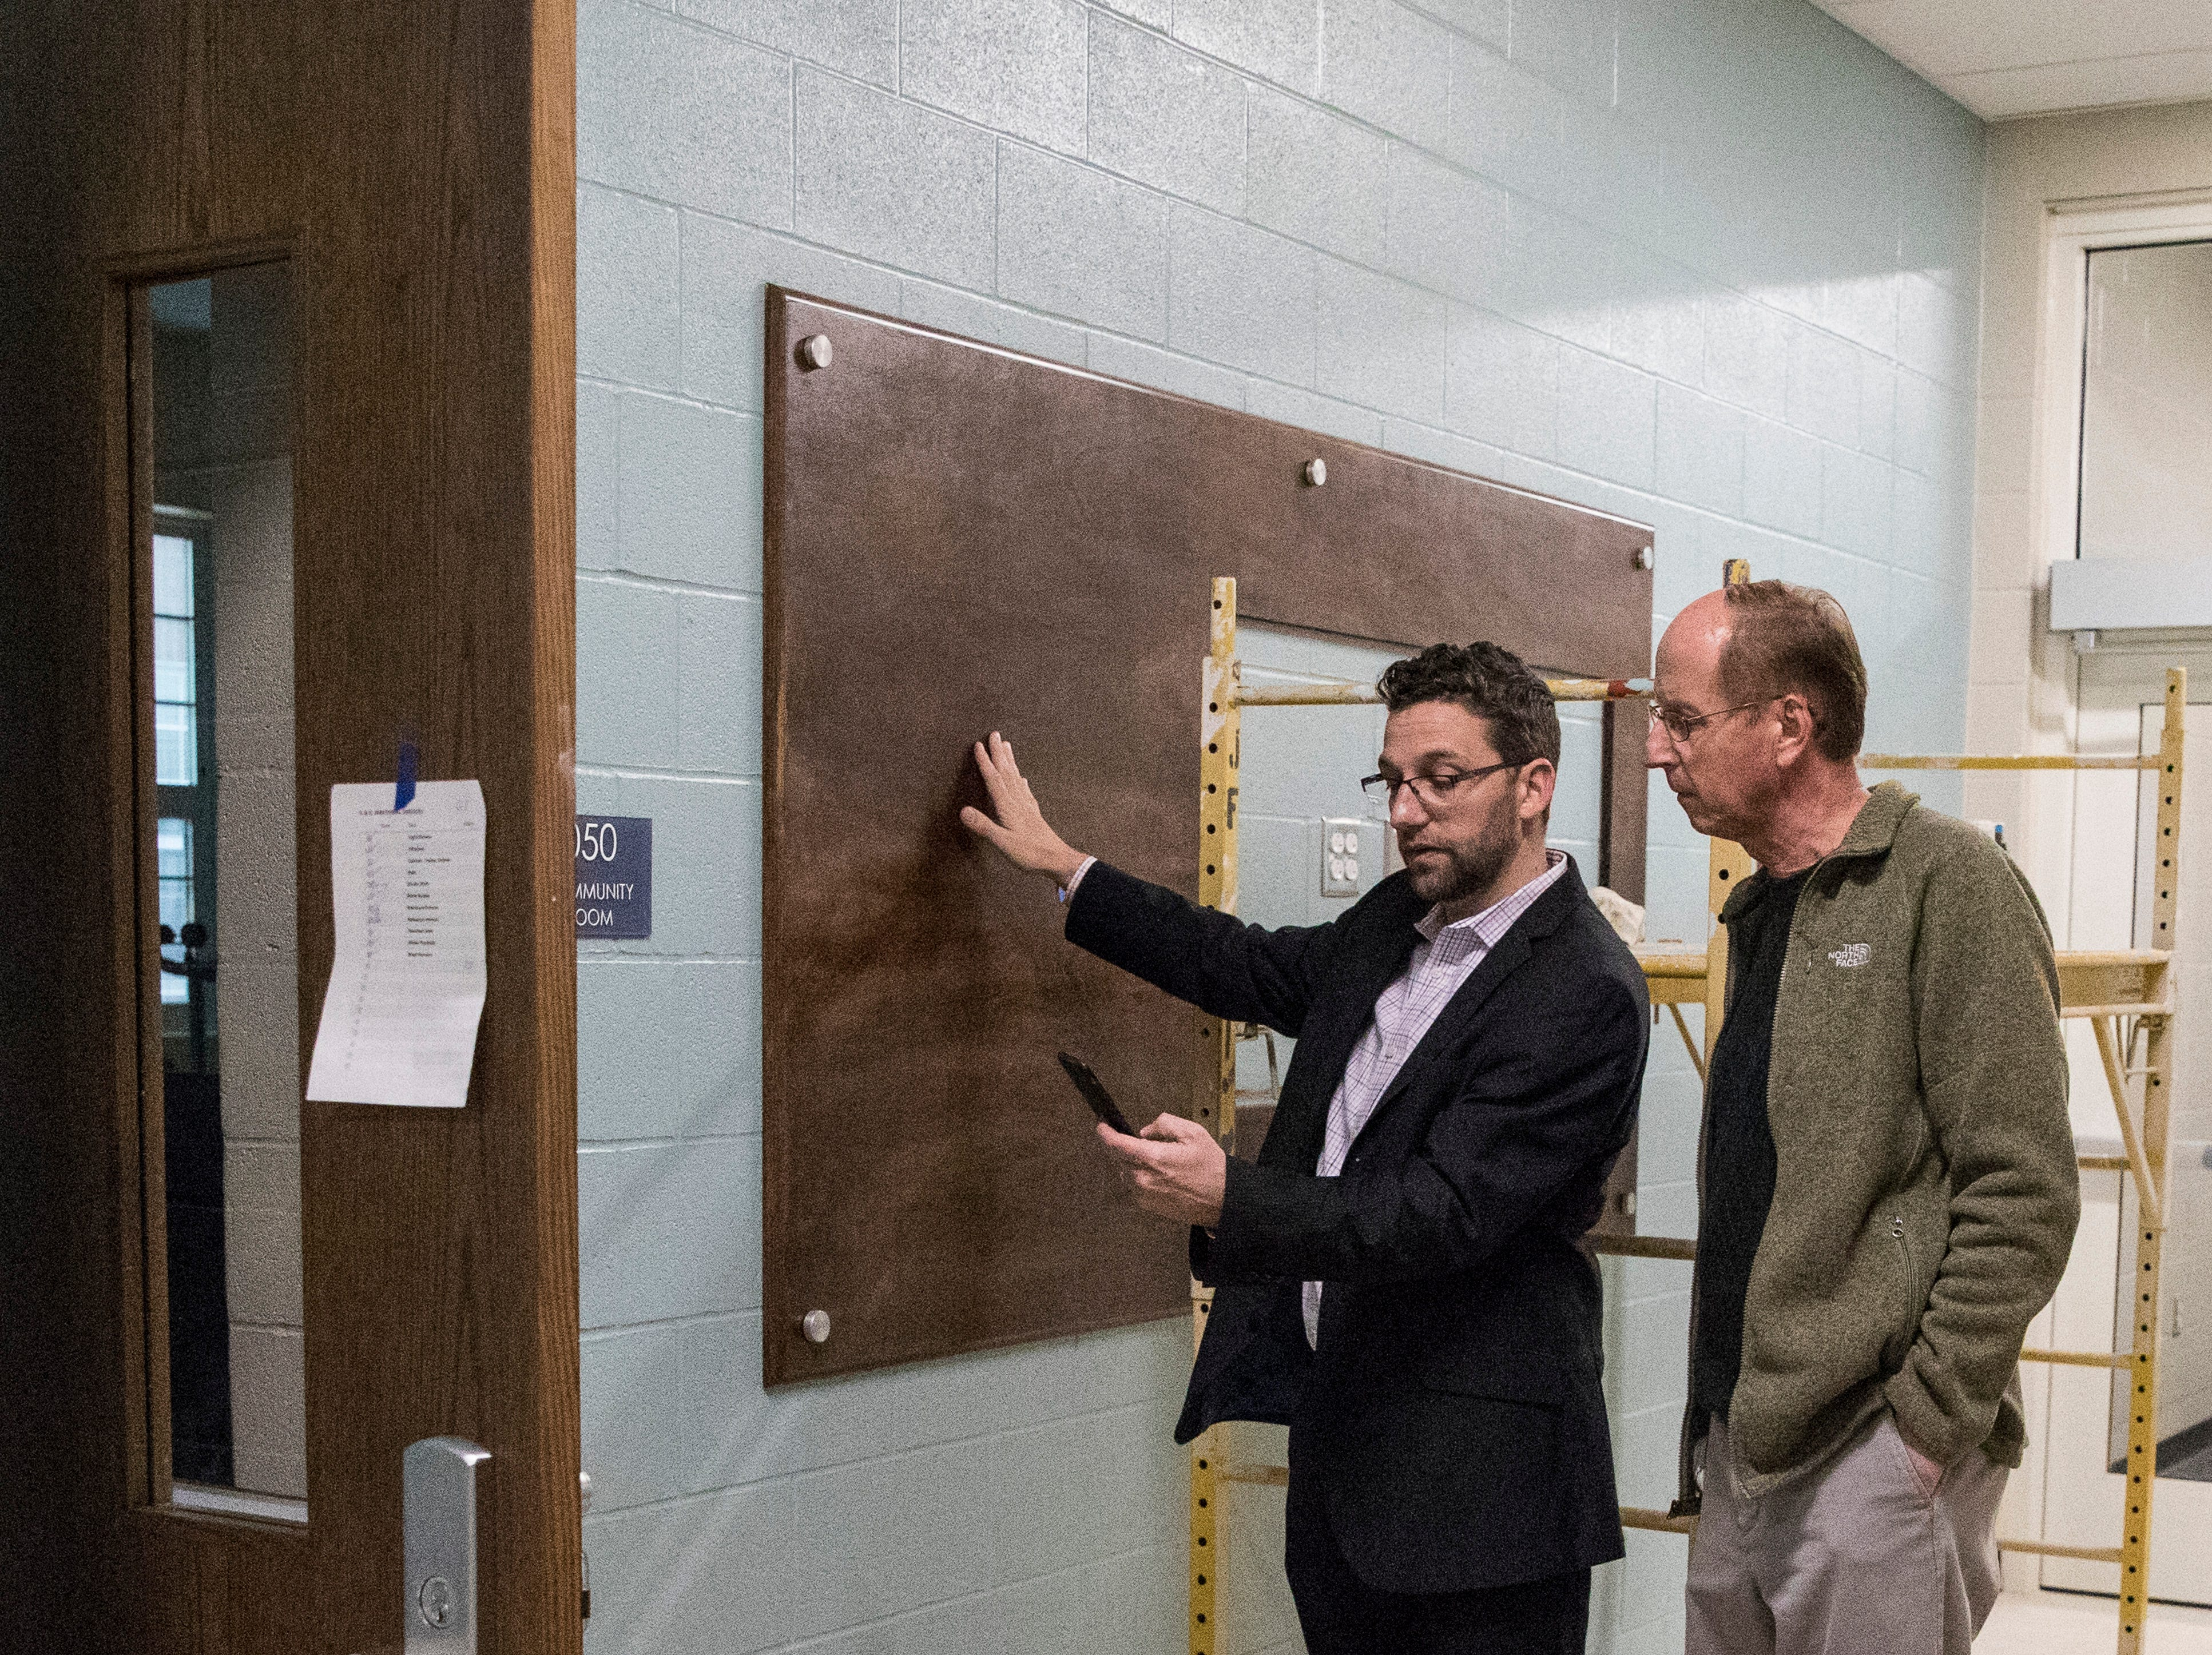 Architect Charlie Jahnigen, left, describes how historical figures like Tecumseh will be presented to both educate and decorate the new Chillicothe Intermediate  School and preserve the community's historical significance.